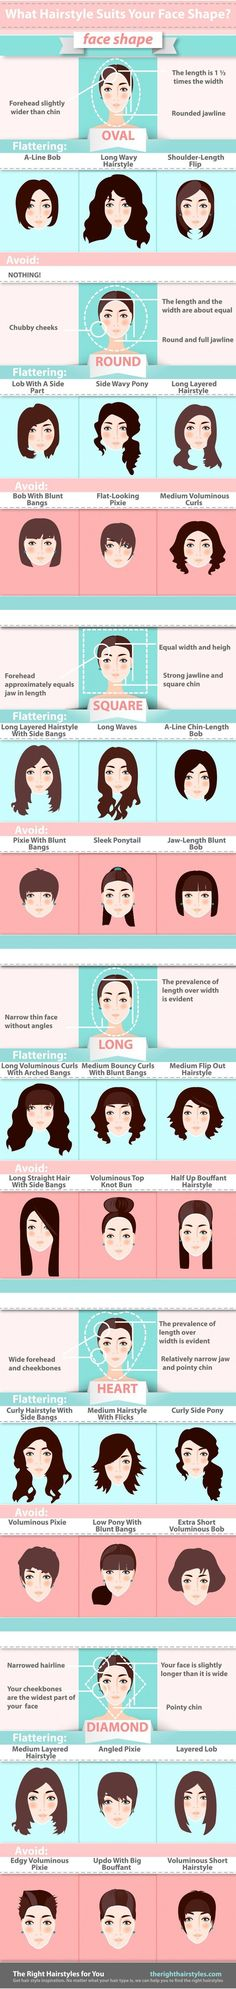 Guide: The Perfect Hairstyle For Your Face Shape | Best Beauty Tips And Fashion Ideas For Women by Makeup Tutorials at http://makeuptutorials.com/perfect-hairstyle-guide-for-your-face-shape/